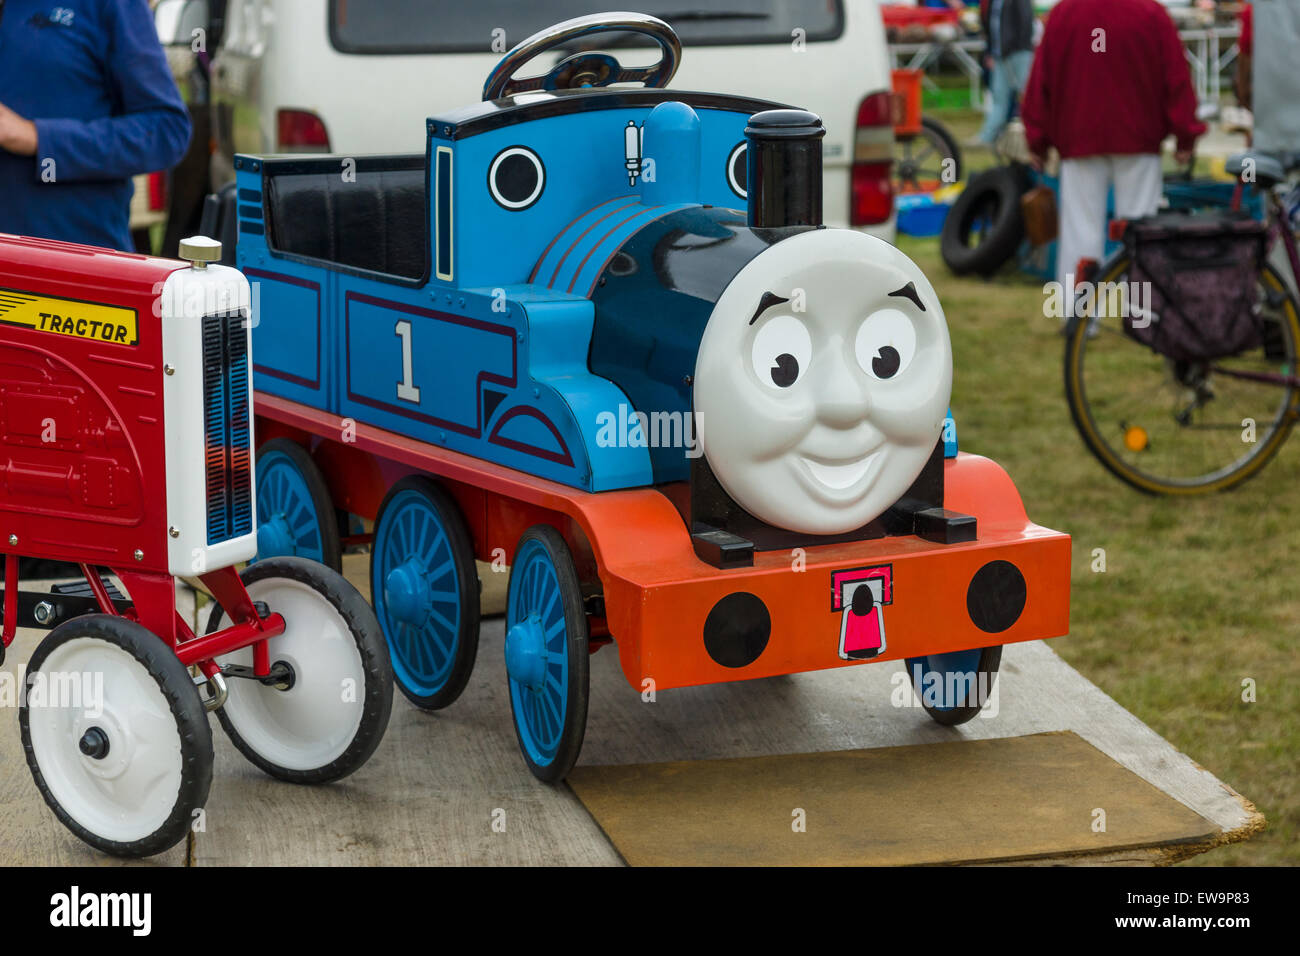 Thomas And Friends Stock Photos Amp Thomas And Friends Stock